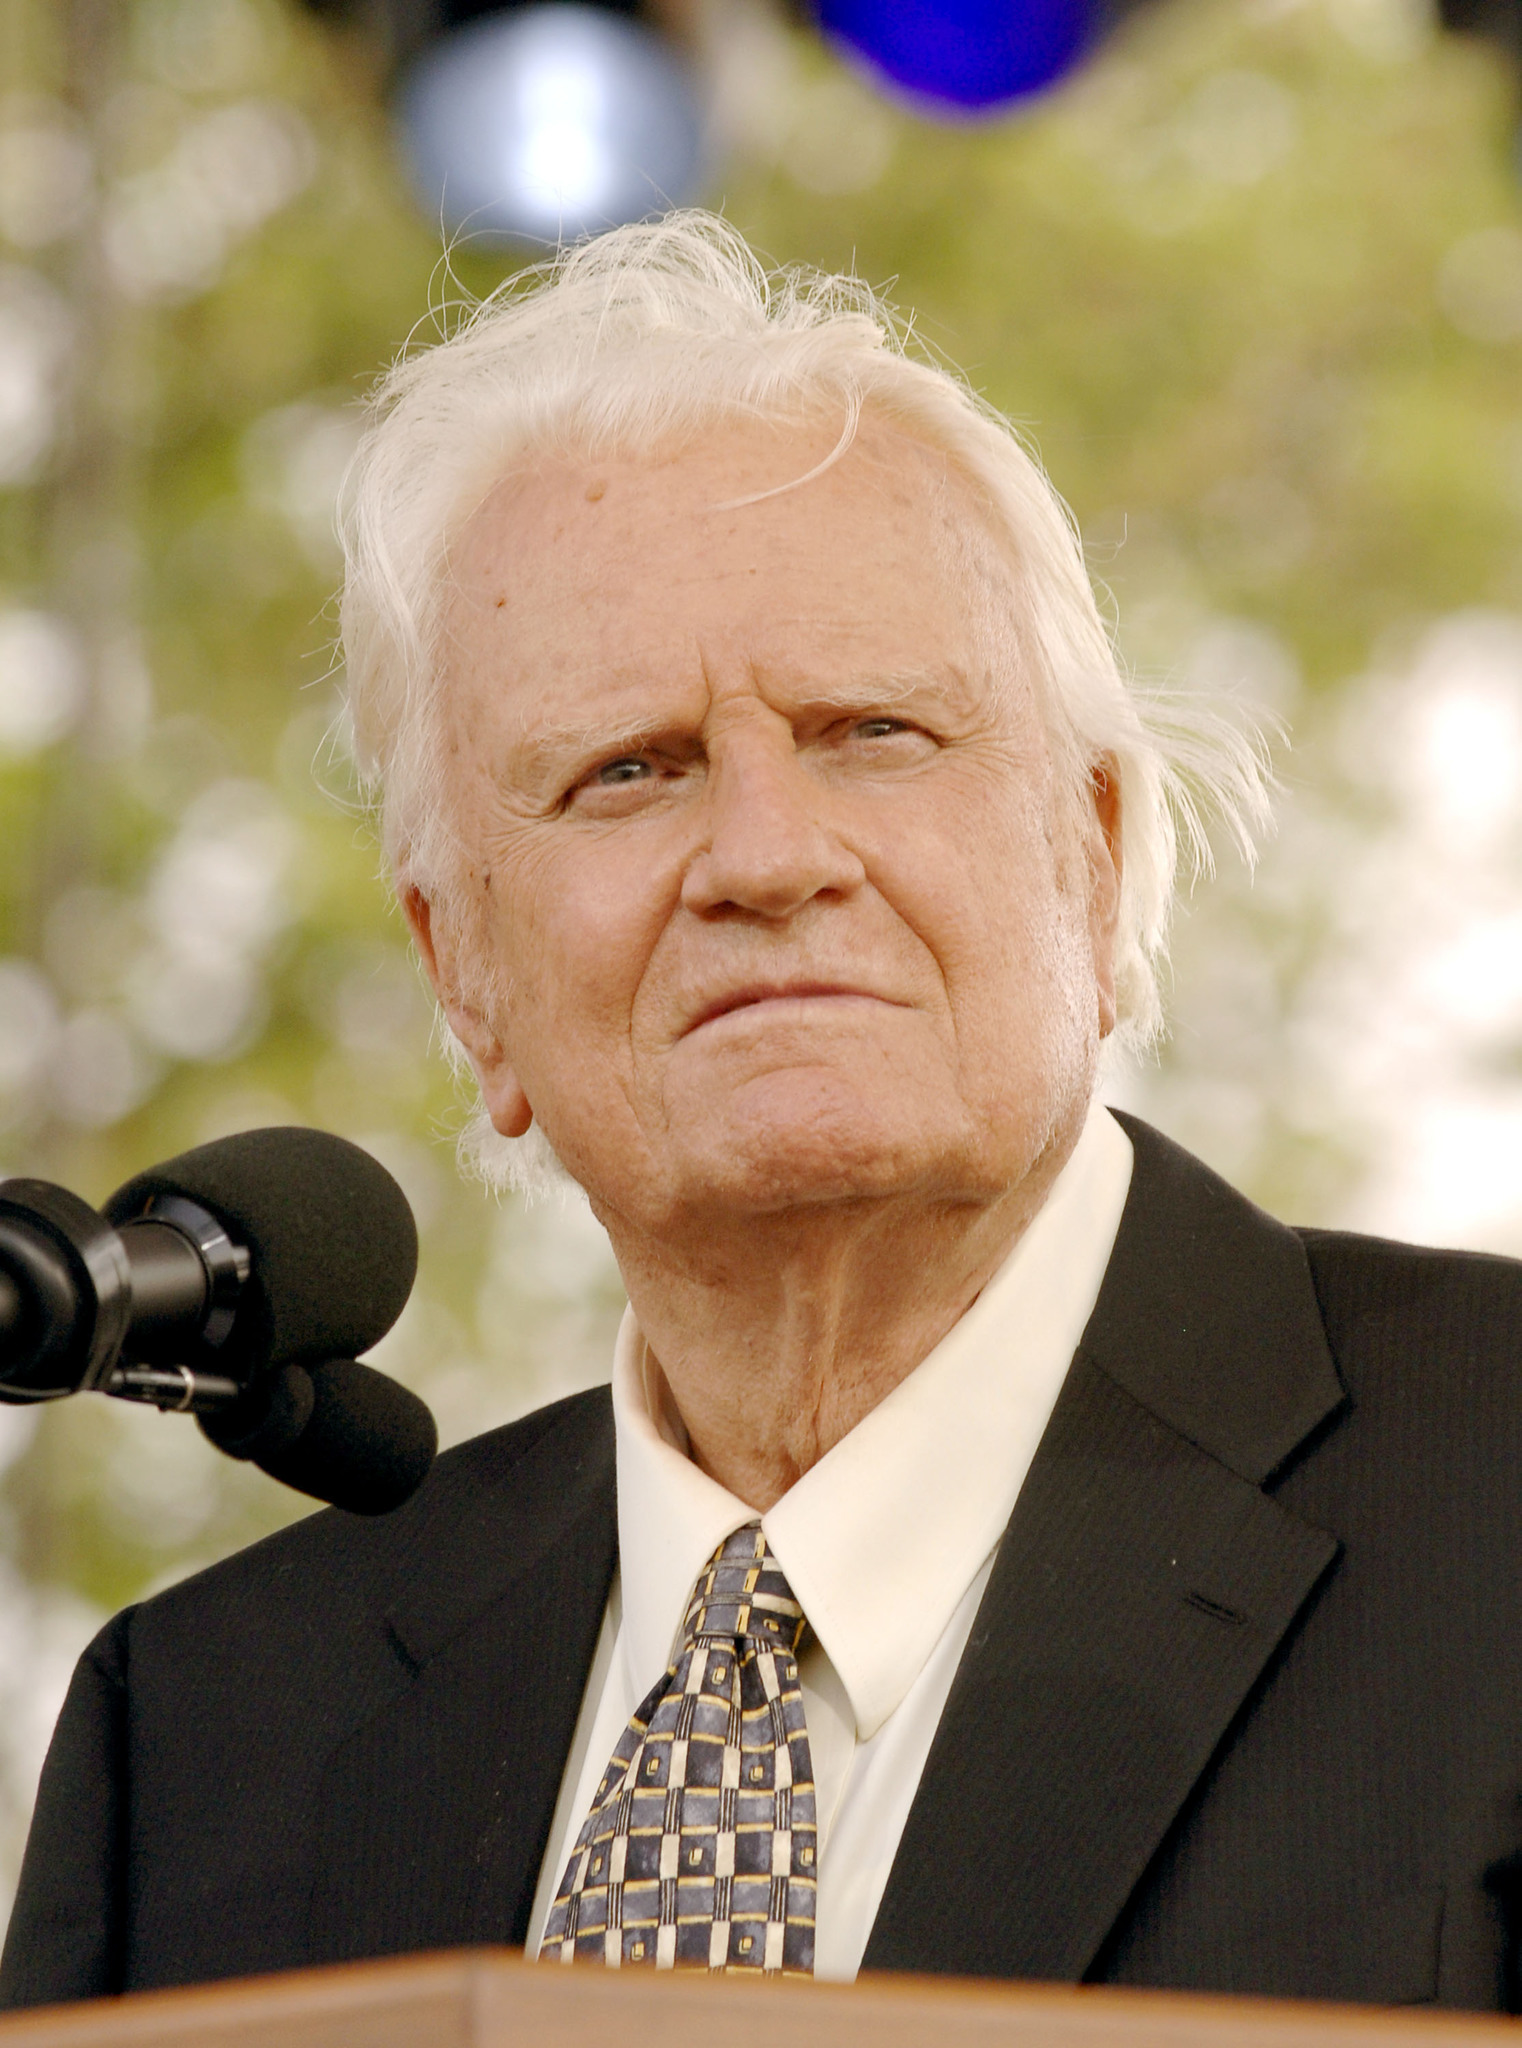 ee billy graham chaplains - HD1522×2048